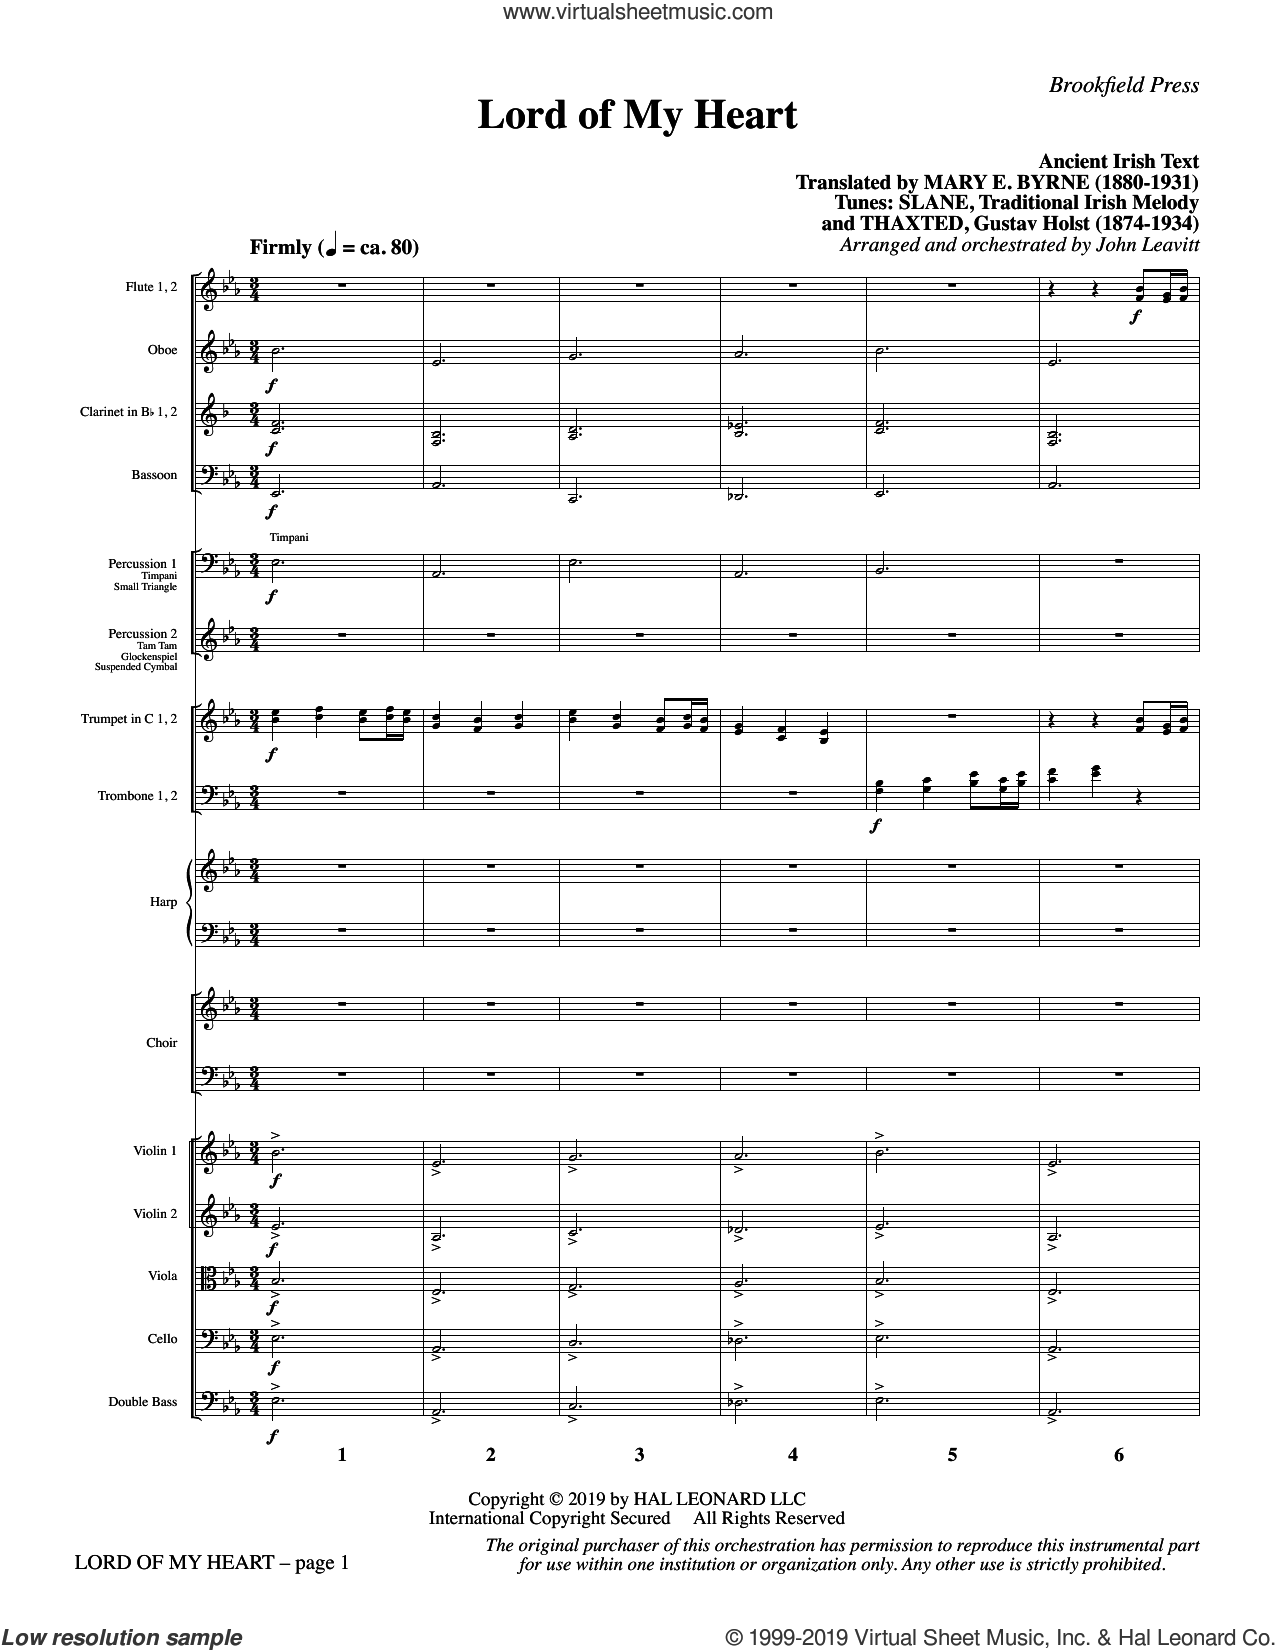 Lord of My Heart (COMPLETE) sheet music for orchestra/band by John Leavitt, Mary E. Byrne (trans.) and Traditional Irish, intermediate skill level